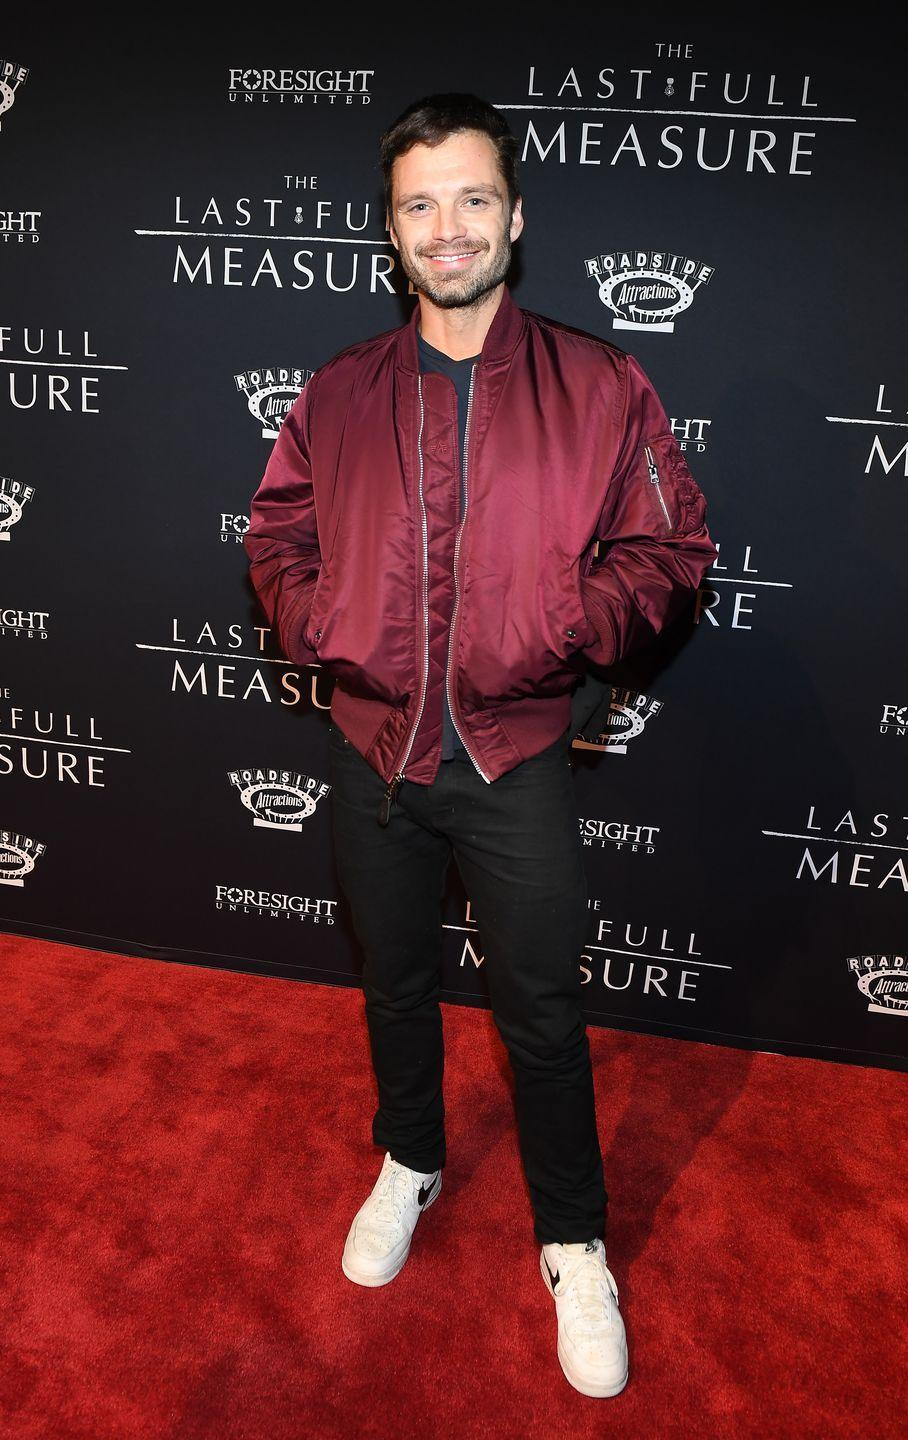 <p>Now, Sebastian Stan is a major name in Hollywood. He's scored huge roles in Marvel films like <em>Captain America, Avengers, </em>and in others like <em>Logan </em><em>Lucky, I Tonya, The Martian</em>, and more. Now, you can watch him on TV in <em>The Falcon and the Winter Soldier</em> on Disney+. I can't keep up!</p>